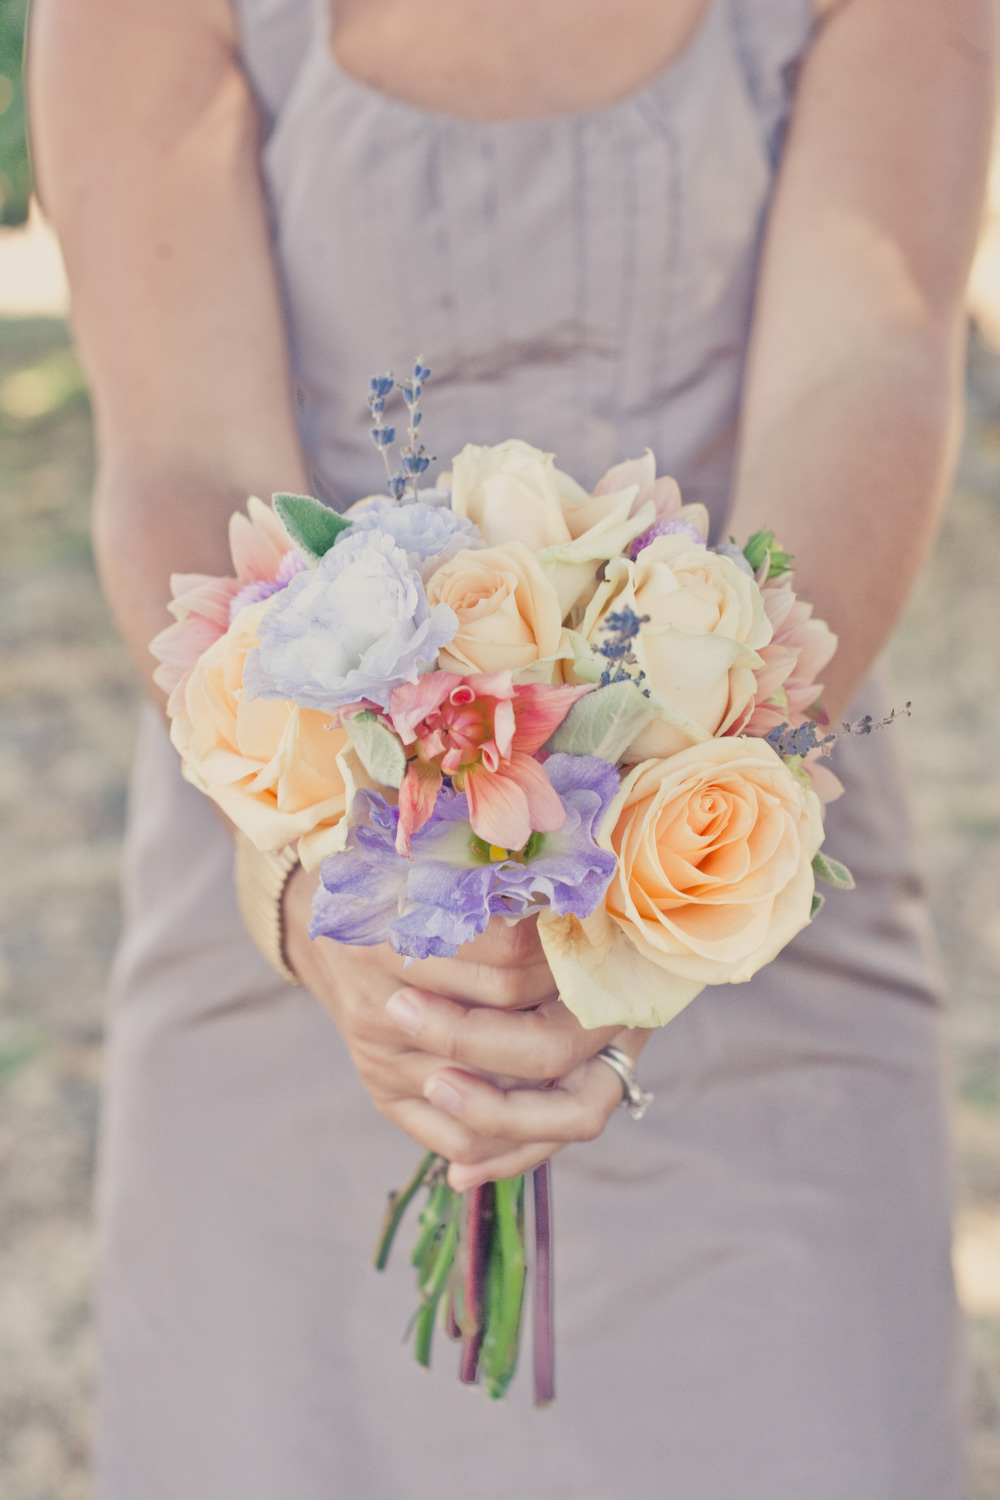 Wine-country-wedding-peach-lavender-bridesmaid-bouquet.full